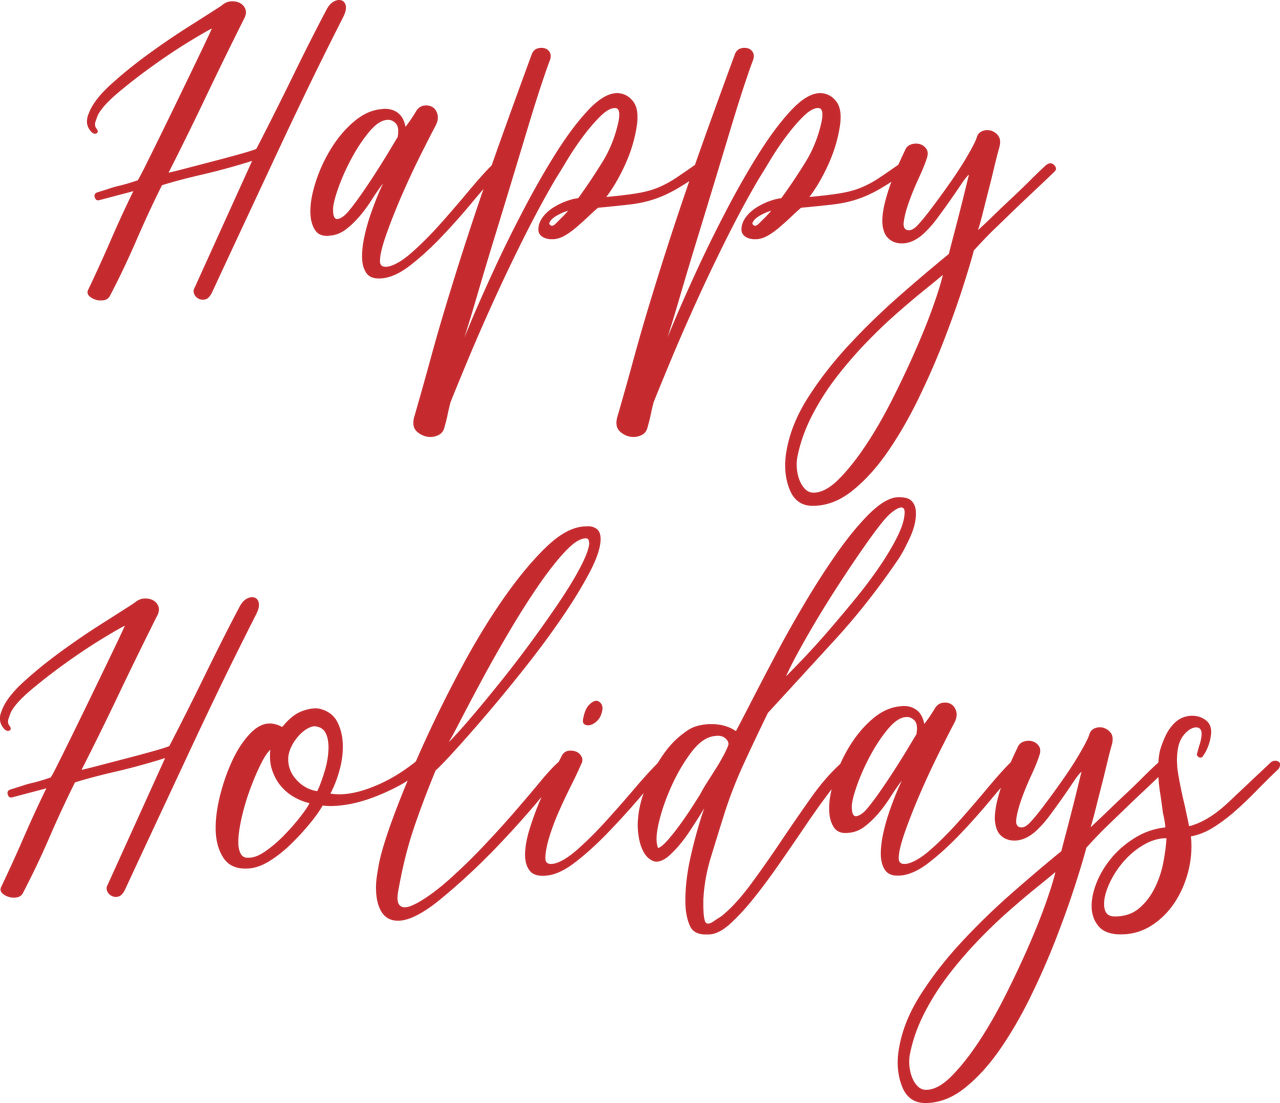 Happy Holidays SVG Cut File